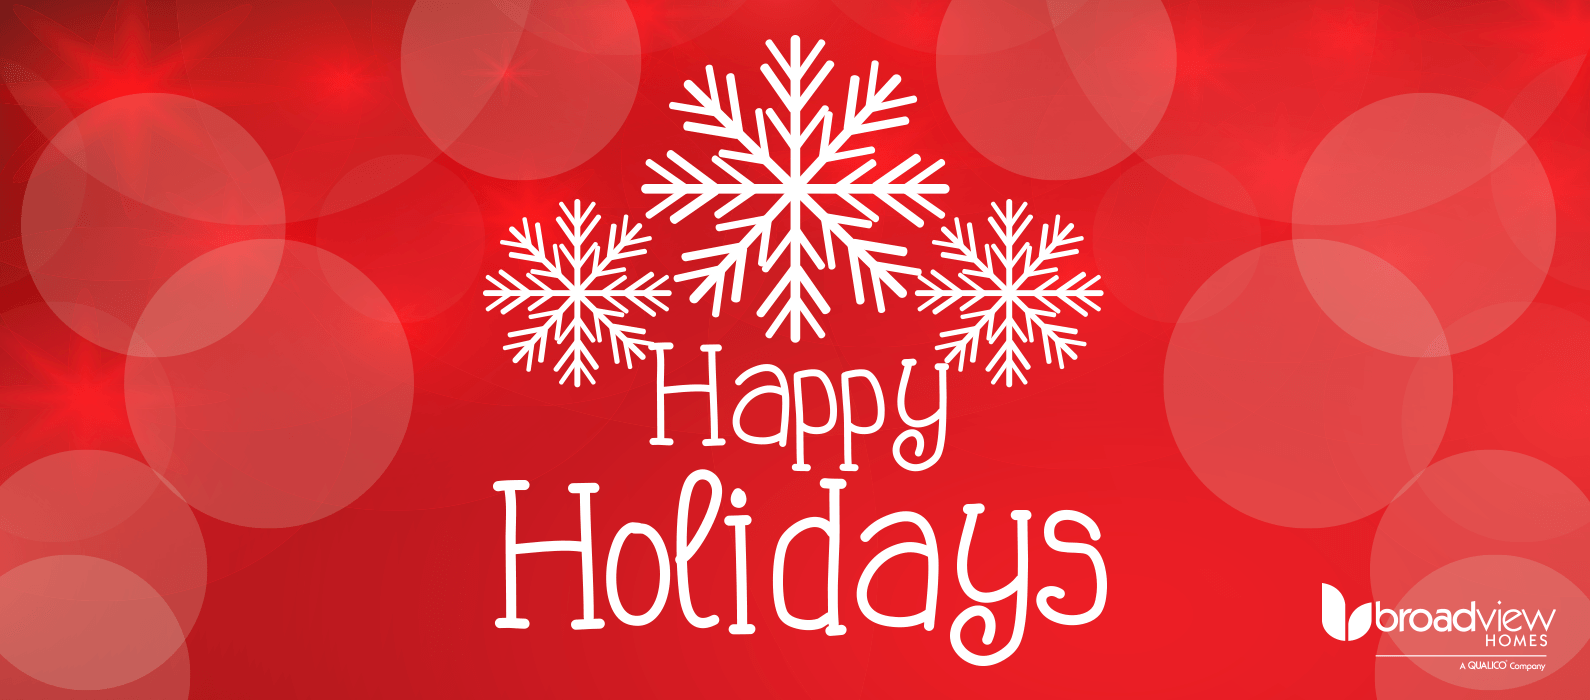 Happy Holidays from Broadview Homes! Featured Image